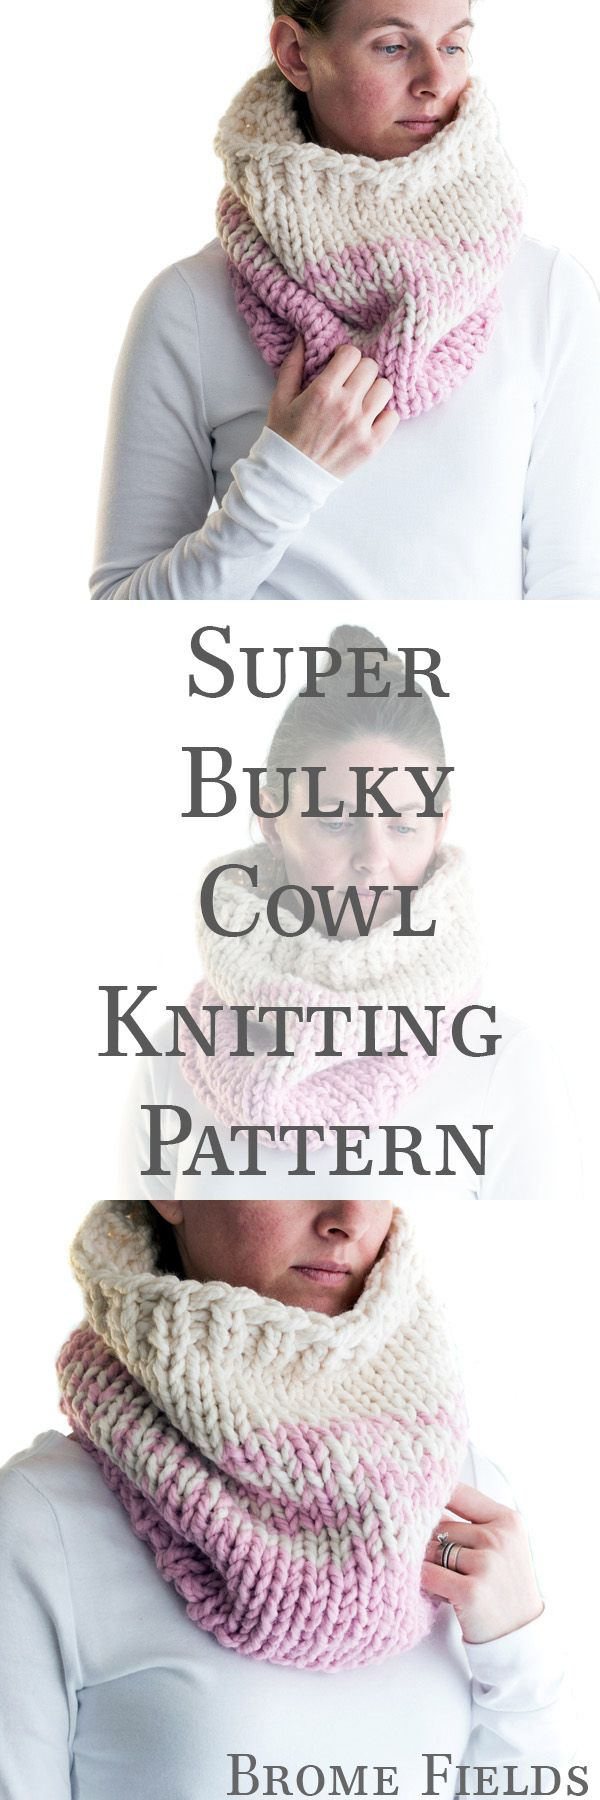 Super Bulky Cowl Knitting Pattern by Brome Fields ...